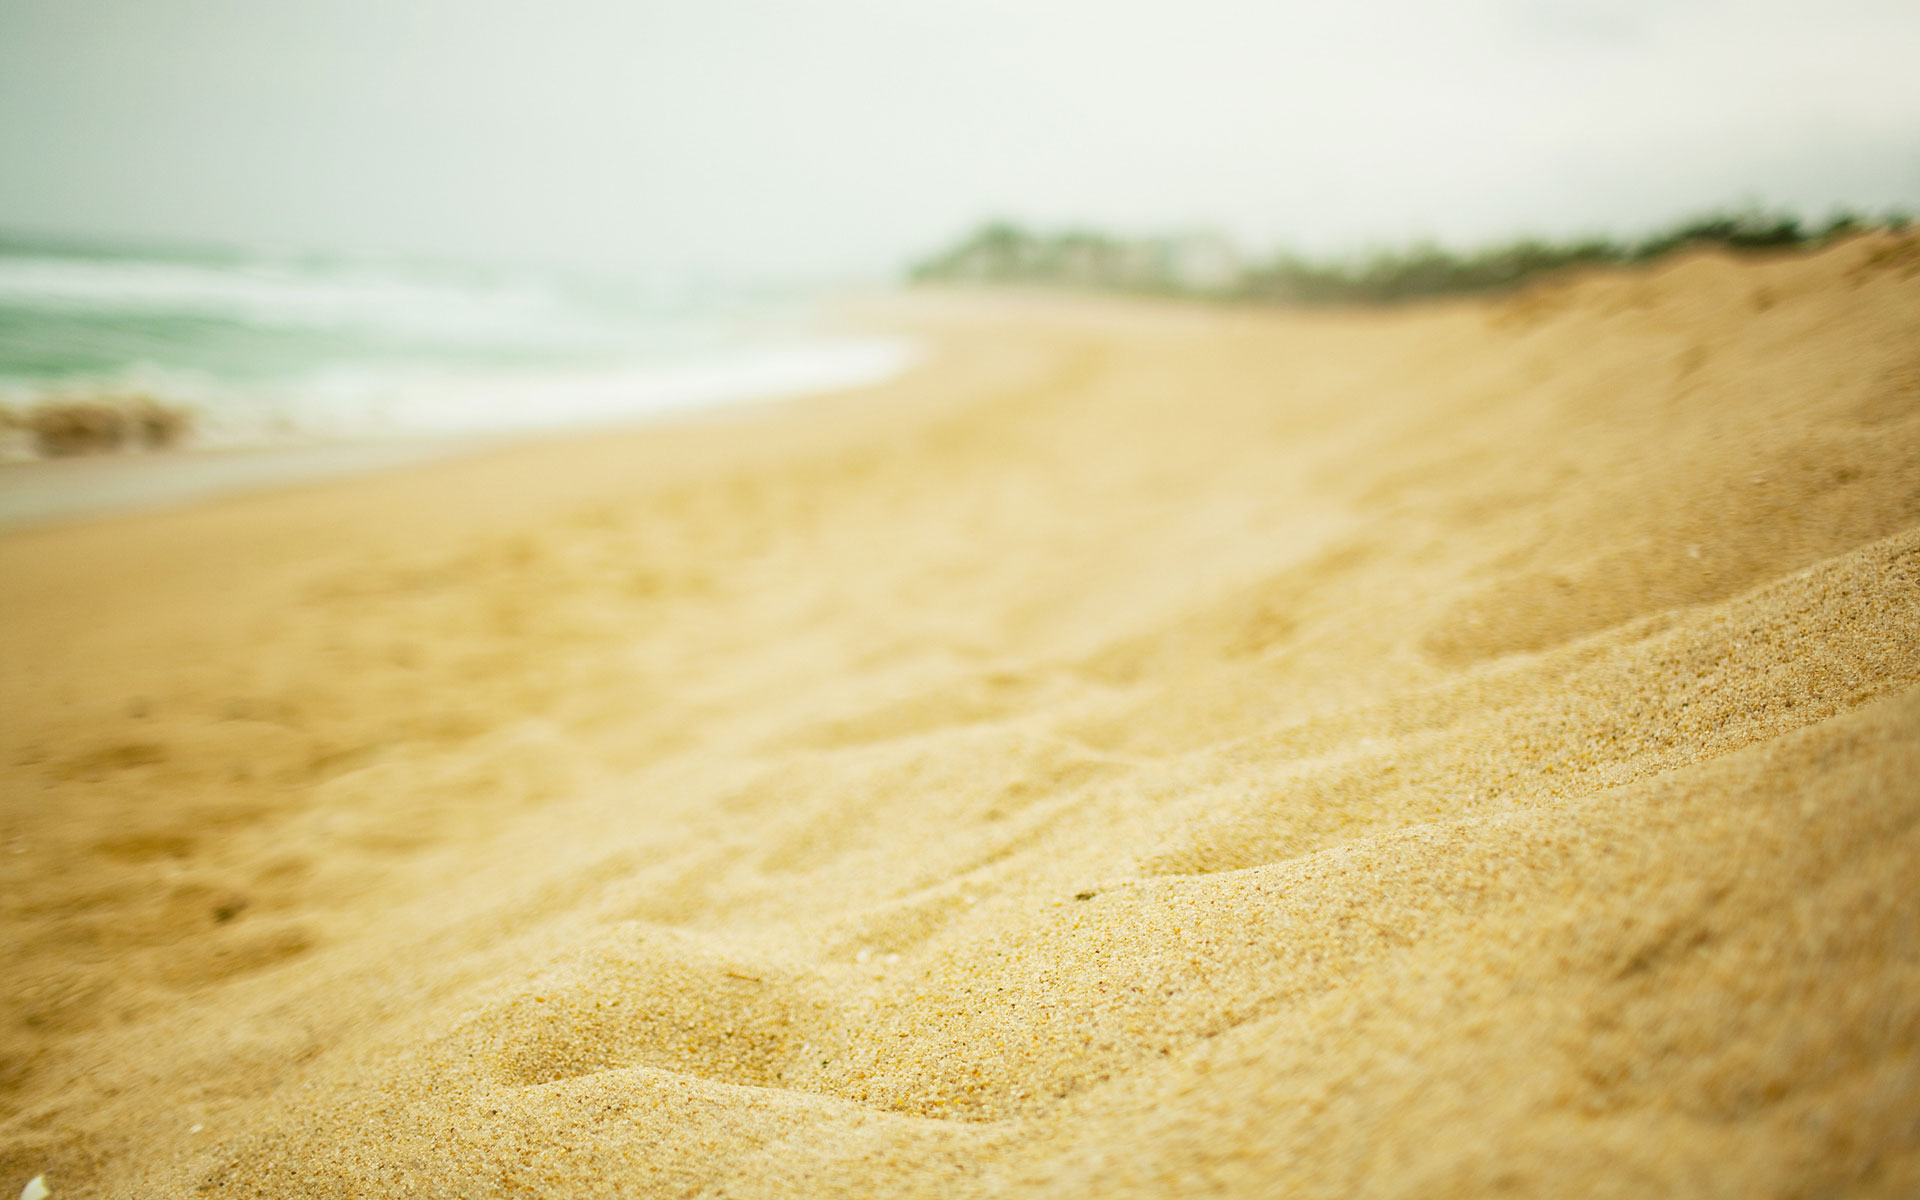 Sand HD Wallpapers  Backgrounds  Wallpaper  1920x1200